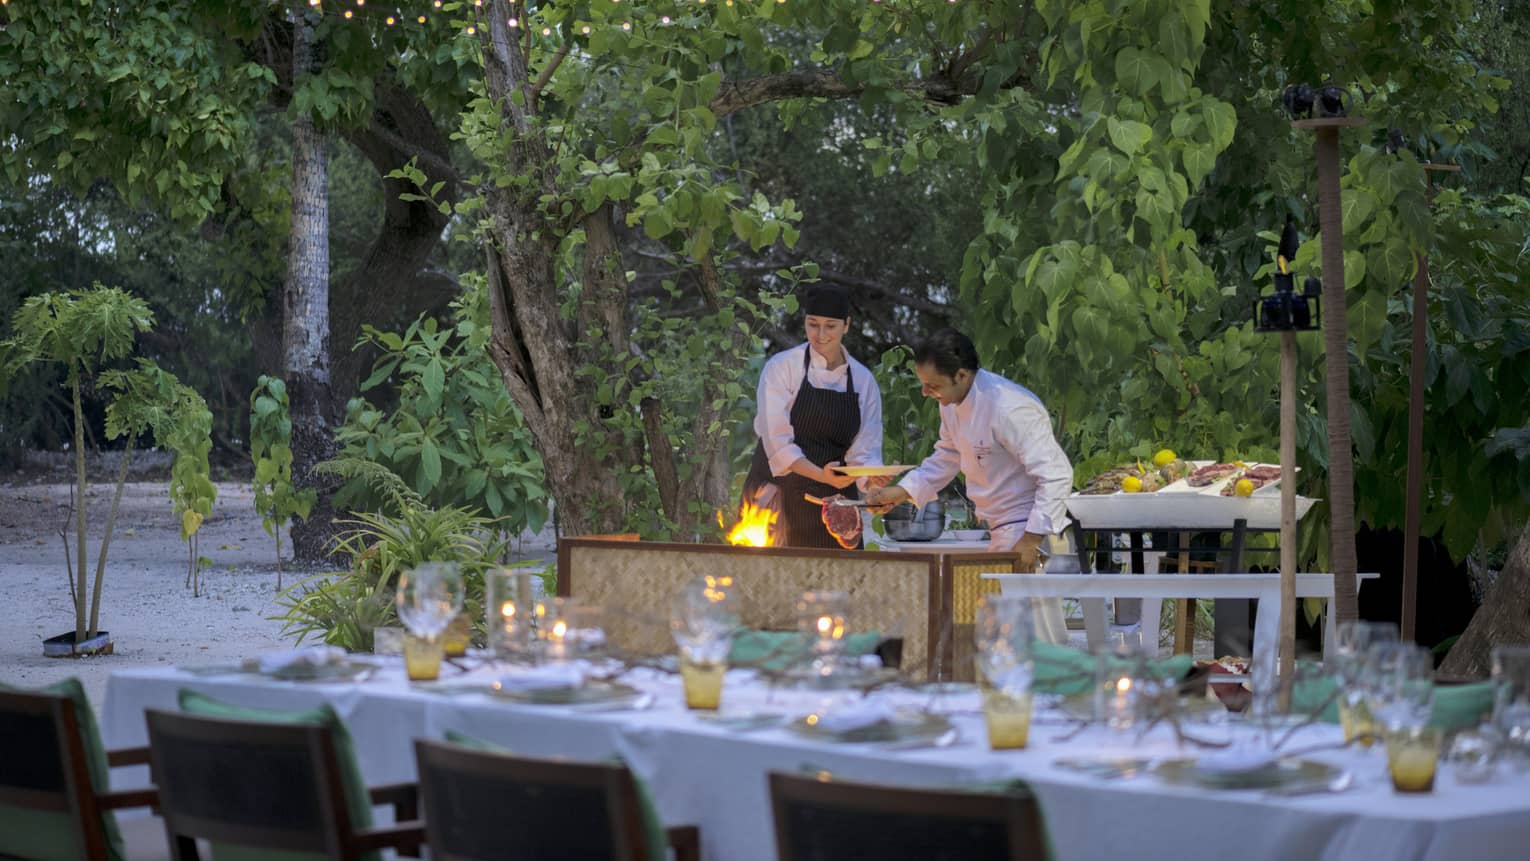 Chefs put large steak on flaming grill by long outdoor dining table, patio lights at night